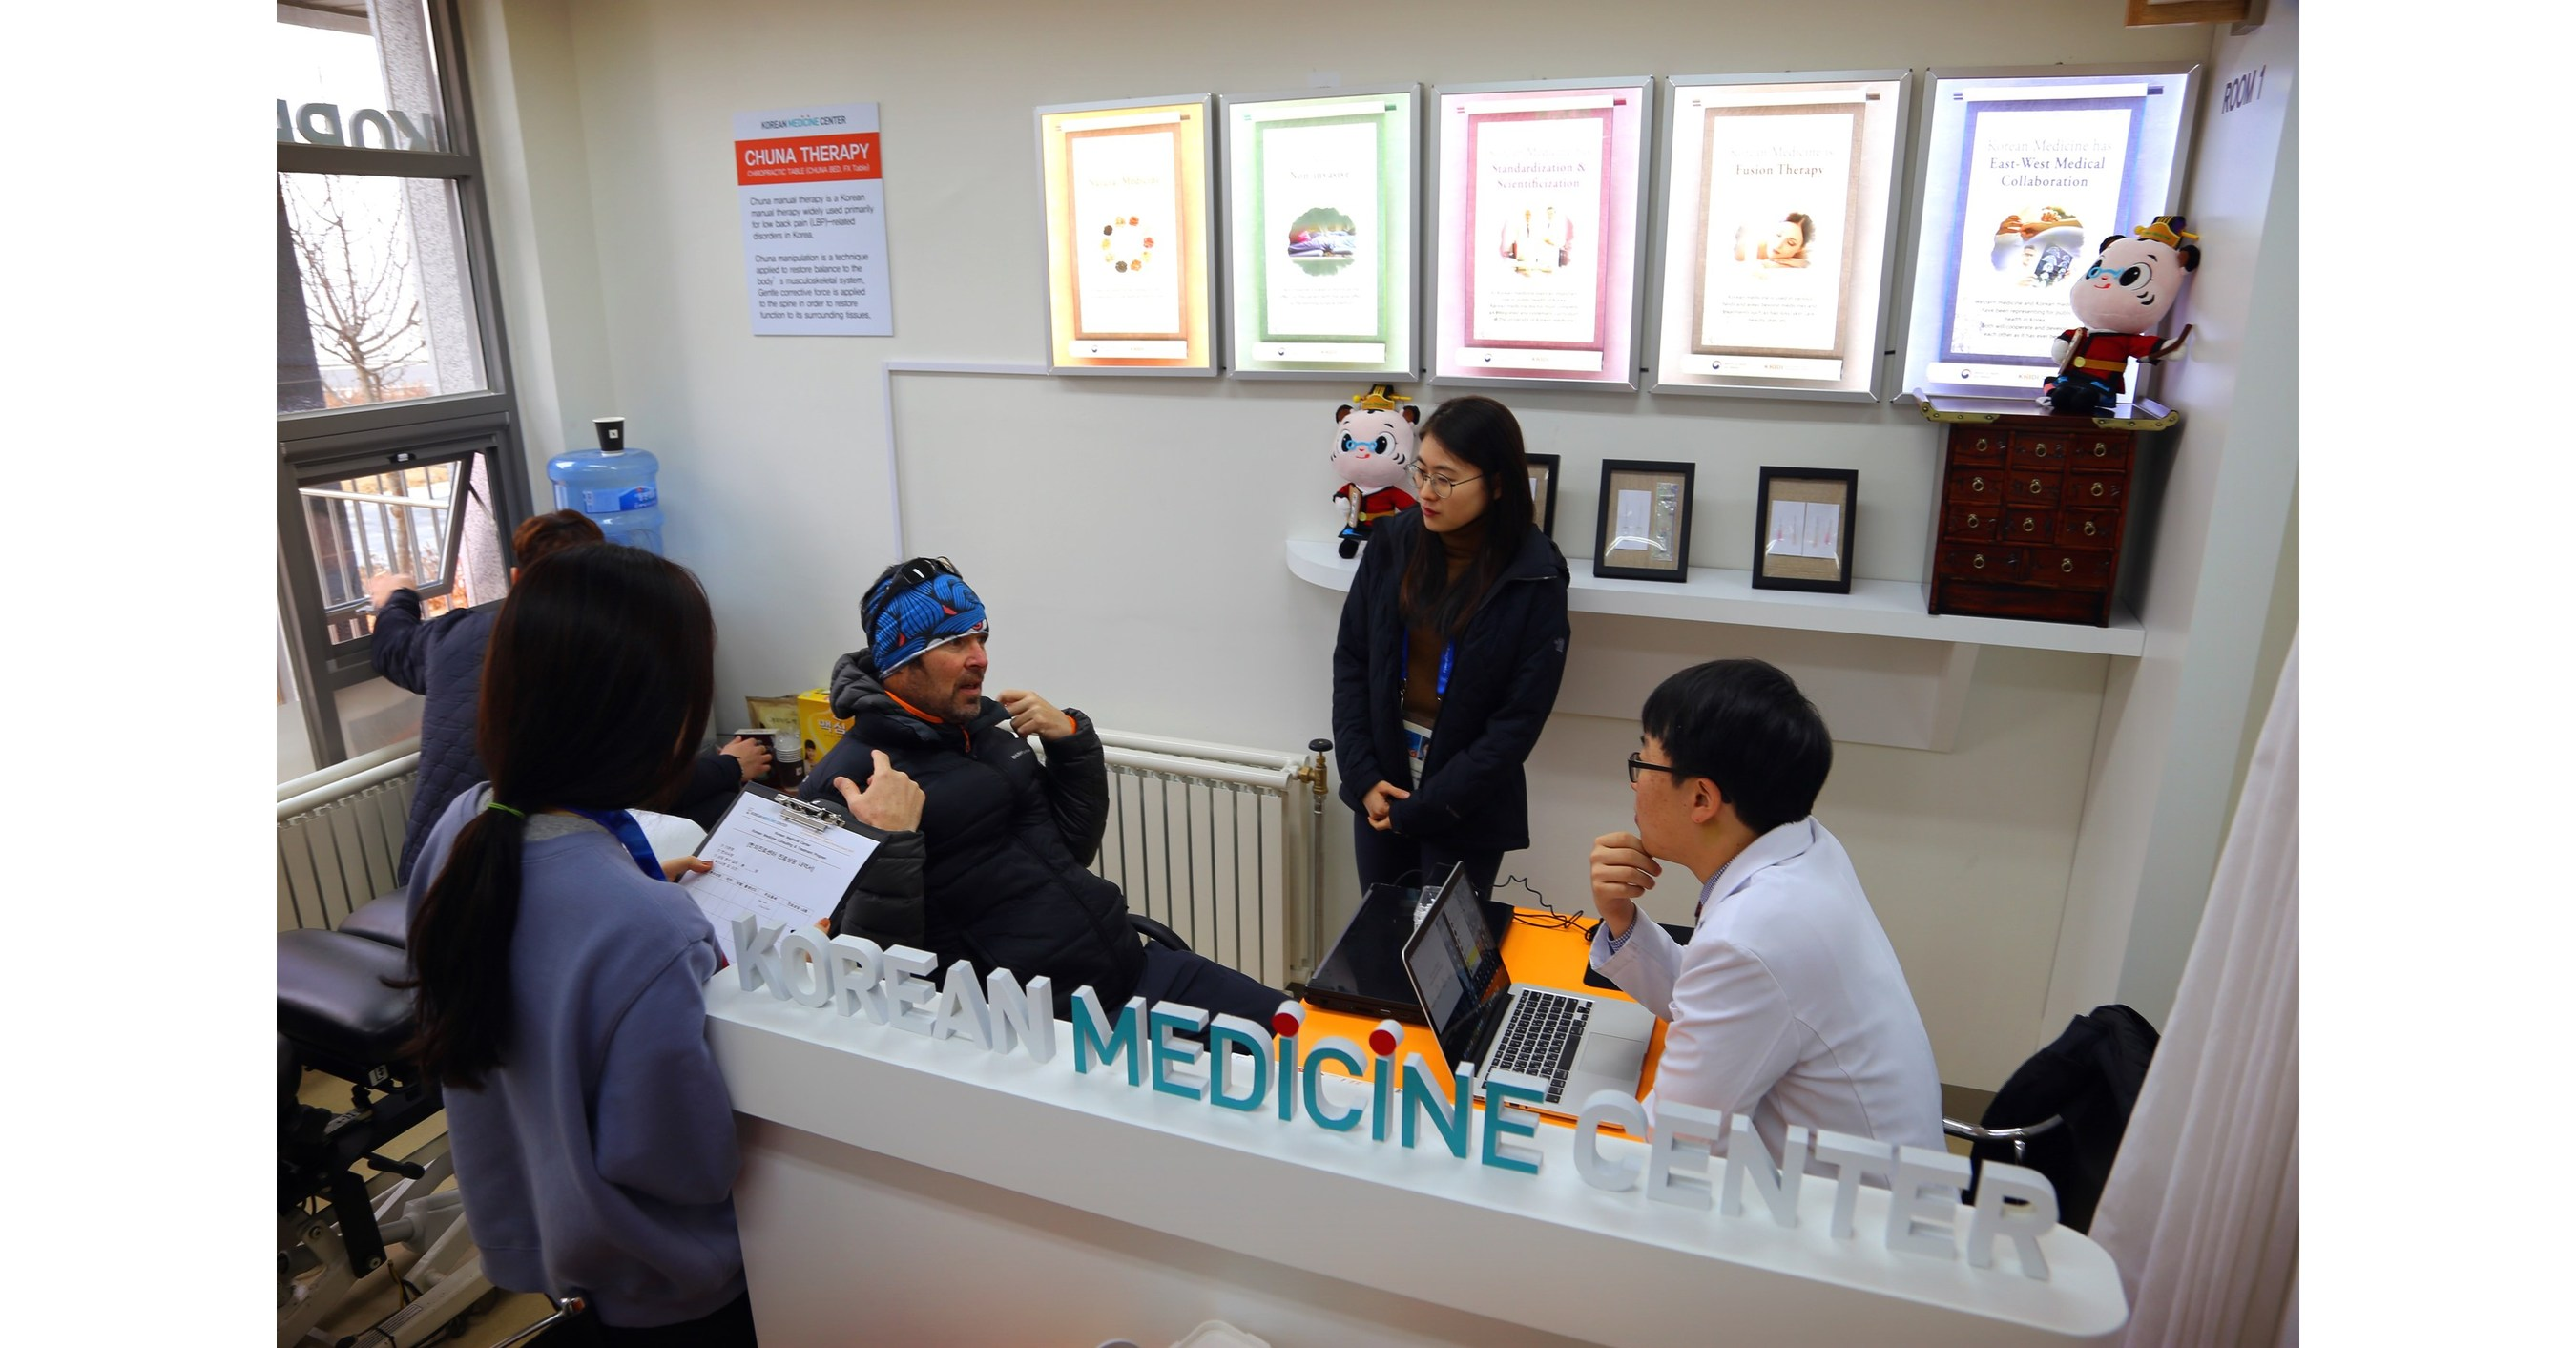 The Only Korean Medicine Center at the Olympic Winter Games